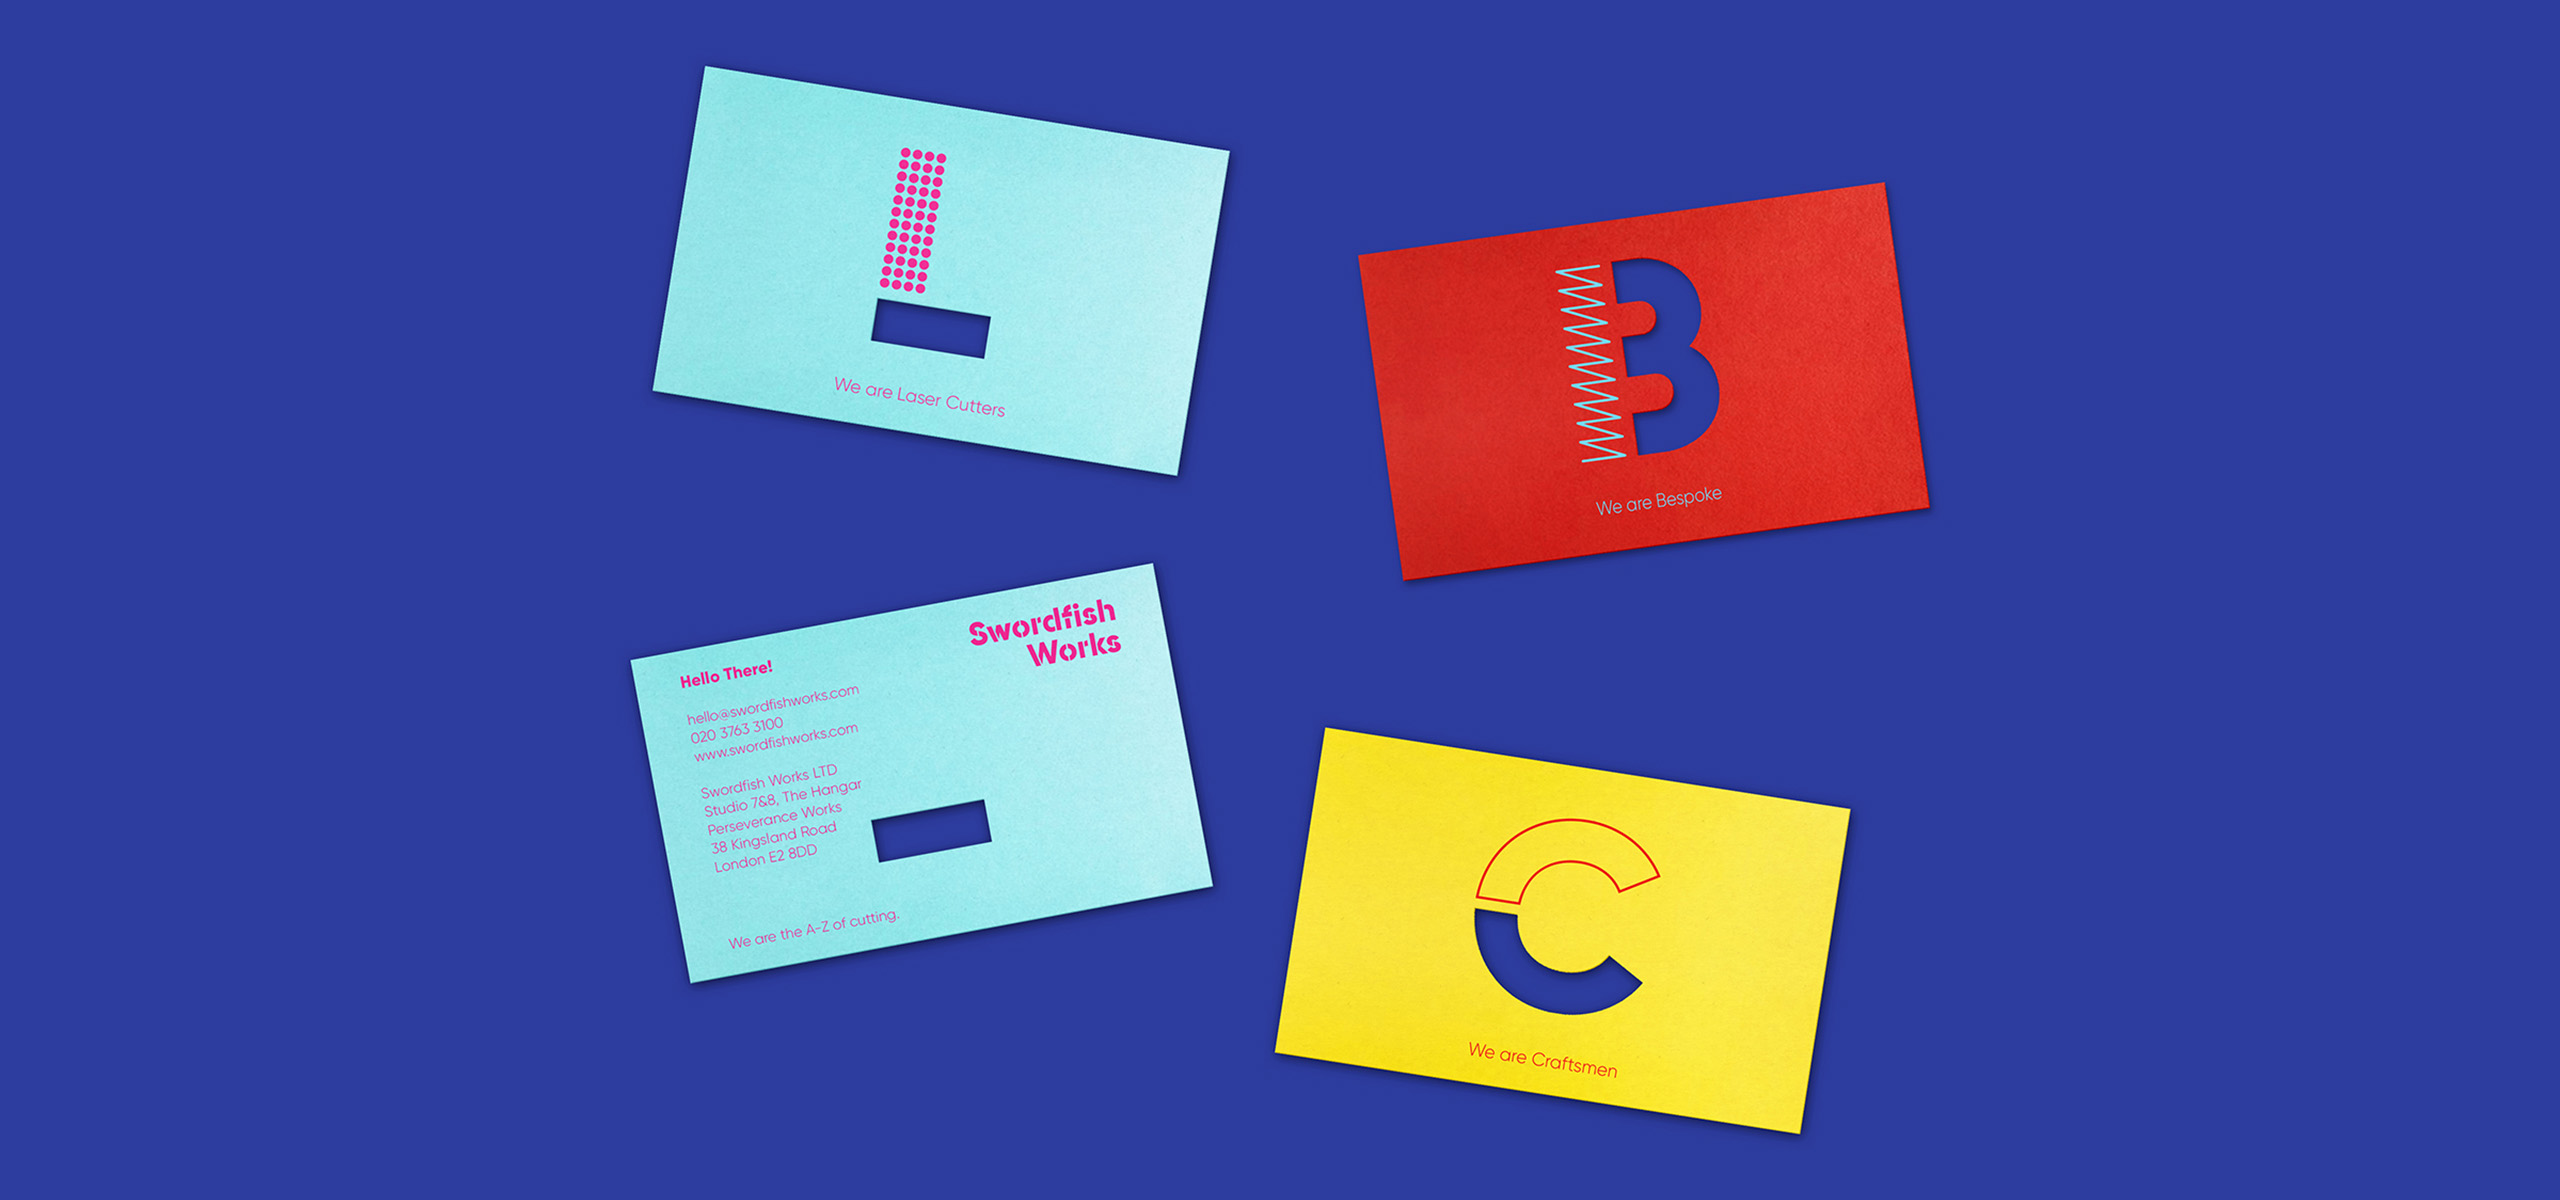 Business cards for laser cutting startup brand Swordfish, designed by White Bear Studio